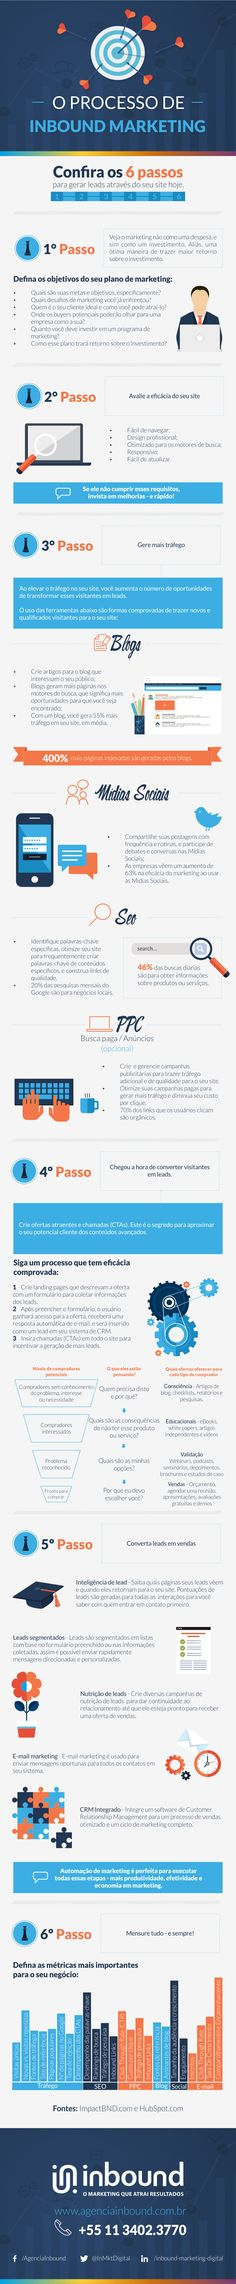 nice Inbound Marketing: O Processo de Inbound Marketing em 6 passos. Digital Marketing Strategy, Inbound Marketing, Influencer Marketing, Business Marketing, Content Marketing, Internet Marketing, Online Marketing, Social Media Marketing, Marketing Strategies